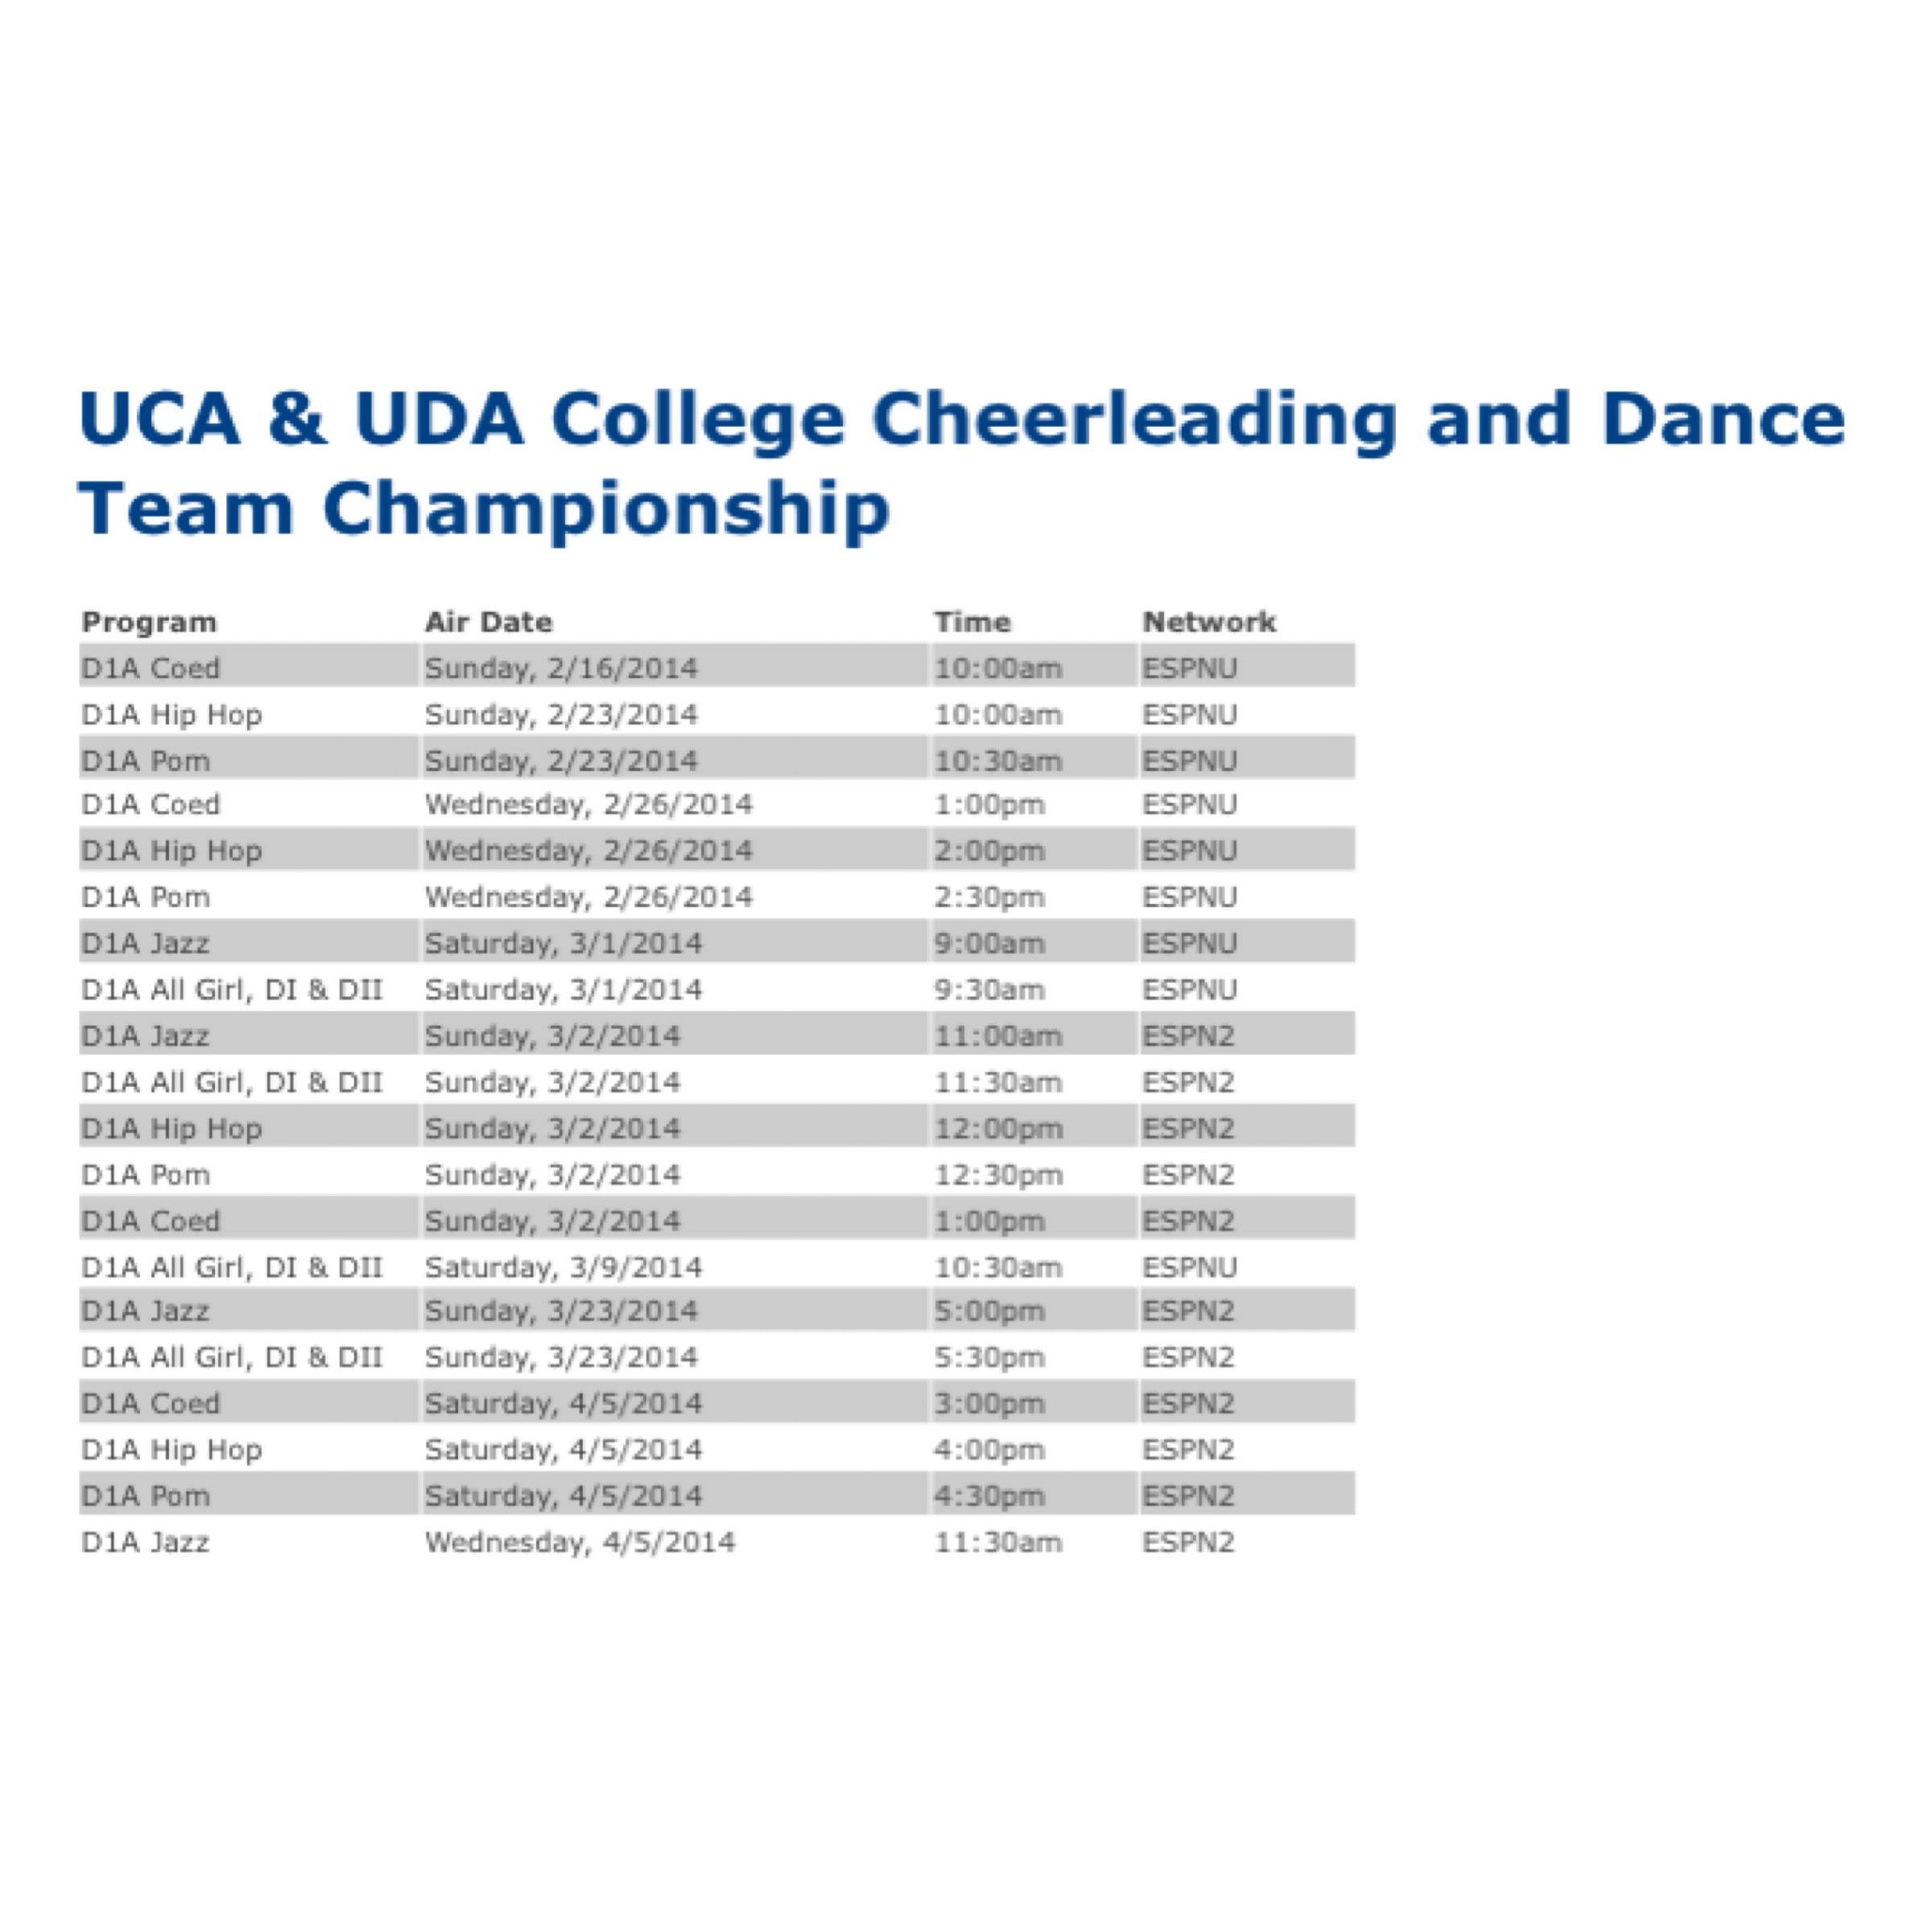 UCA College air dates